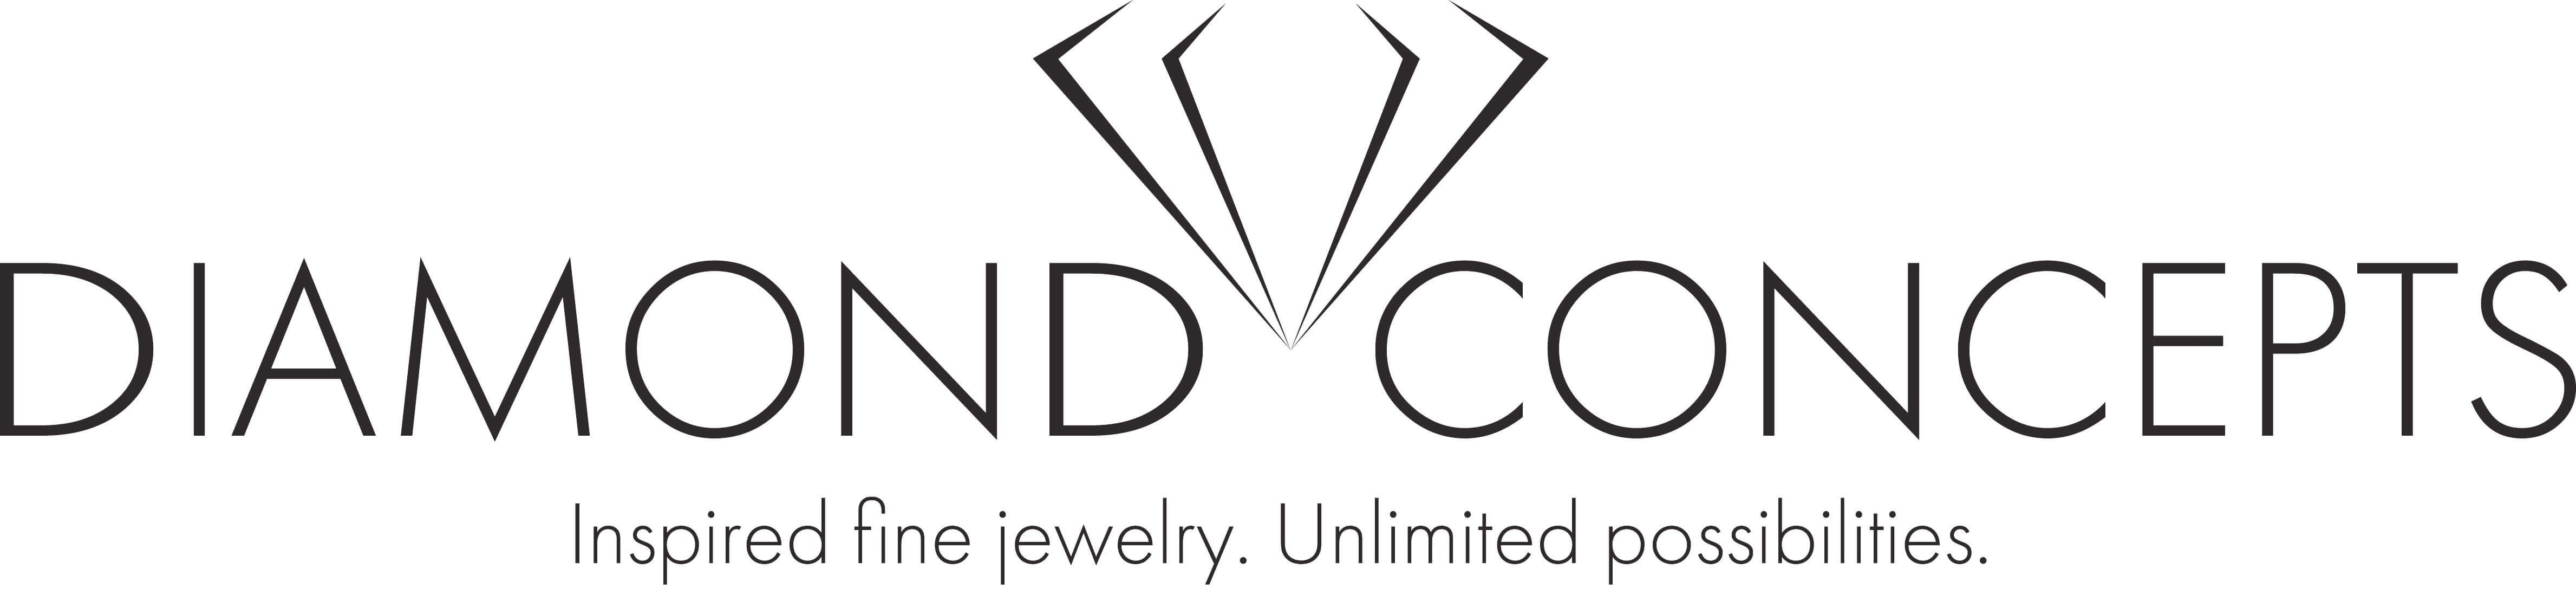 Diamond Concepts Custom Jewelers         Logo